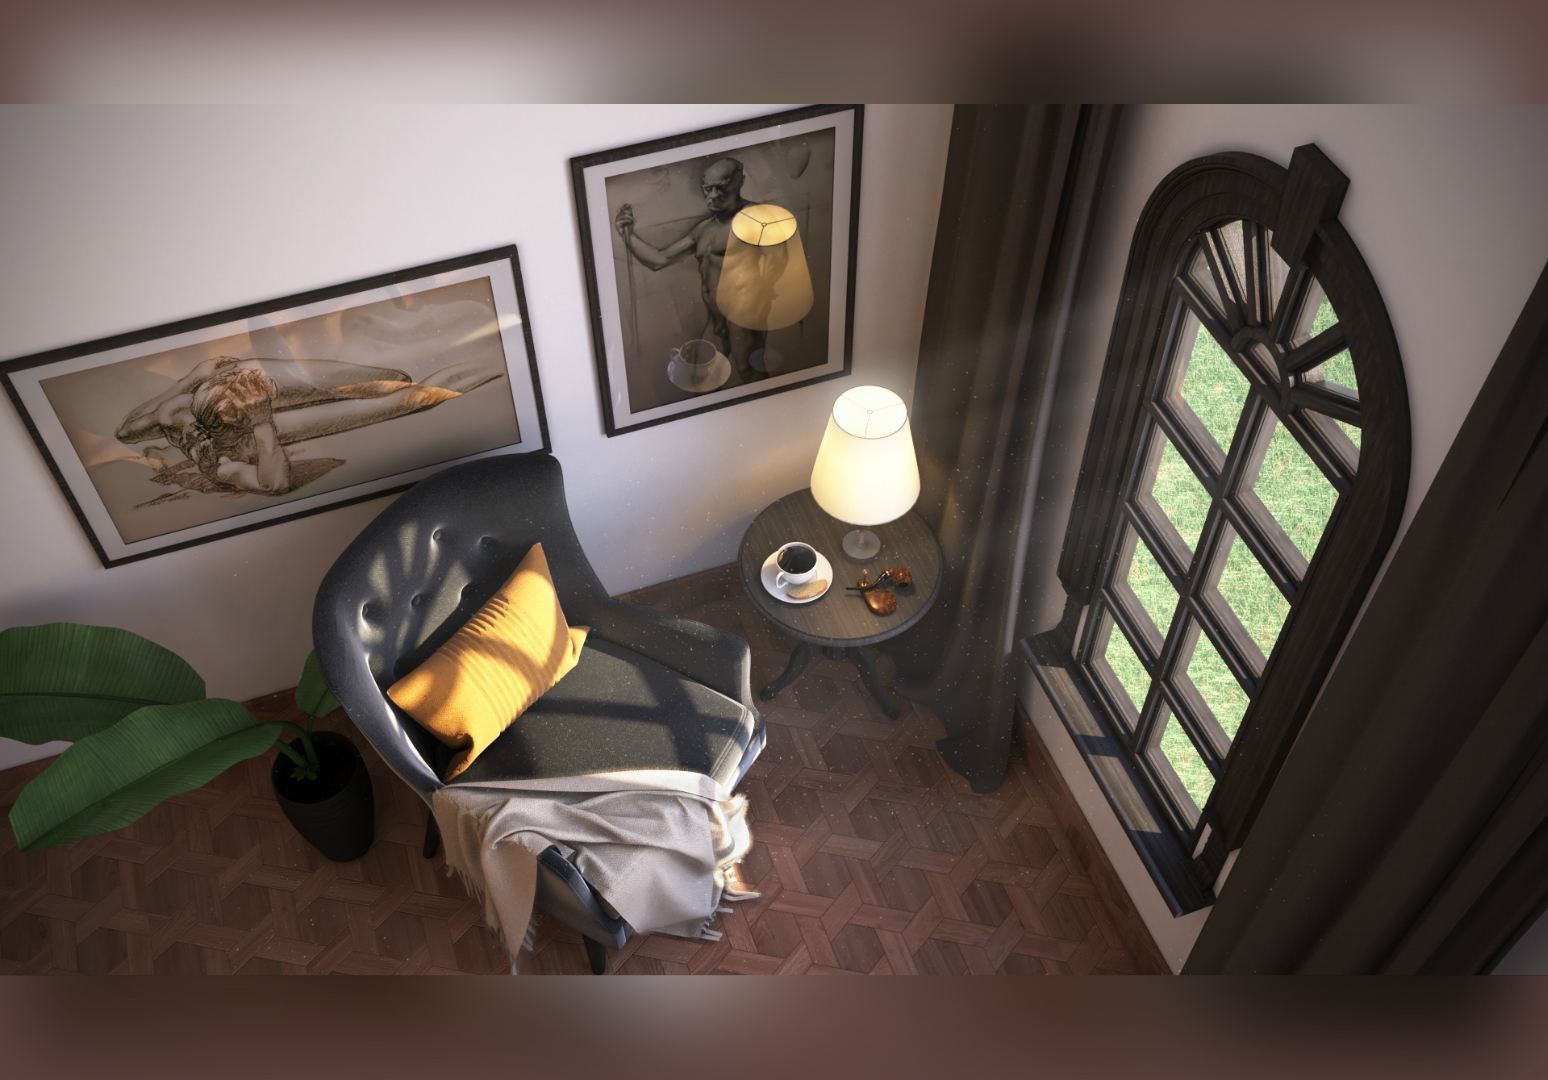 Create a photorealistic render of your place